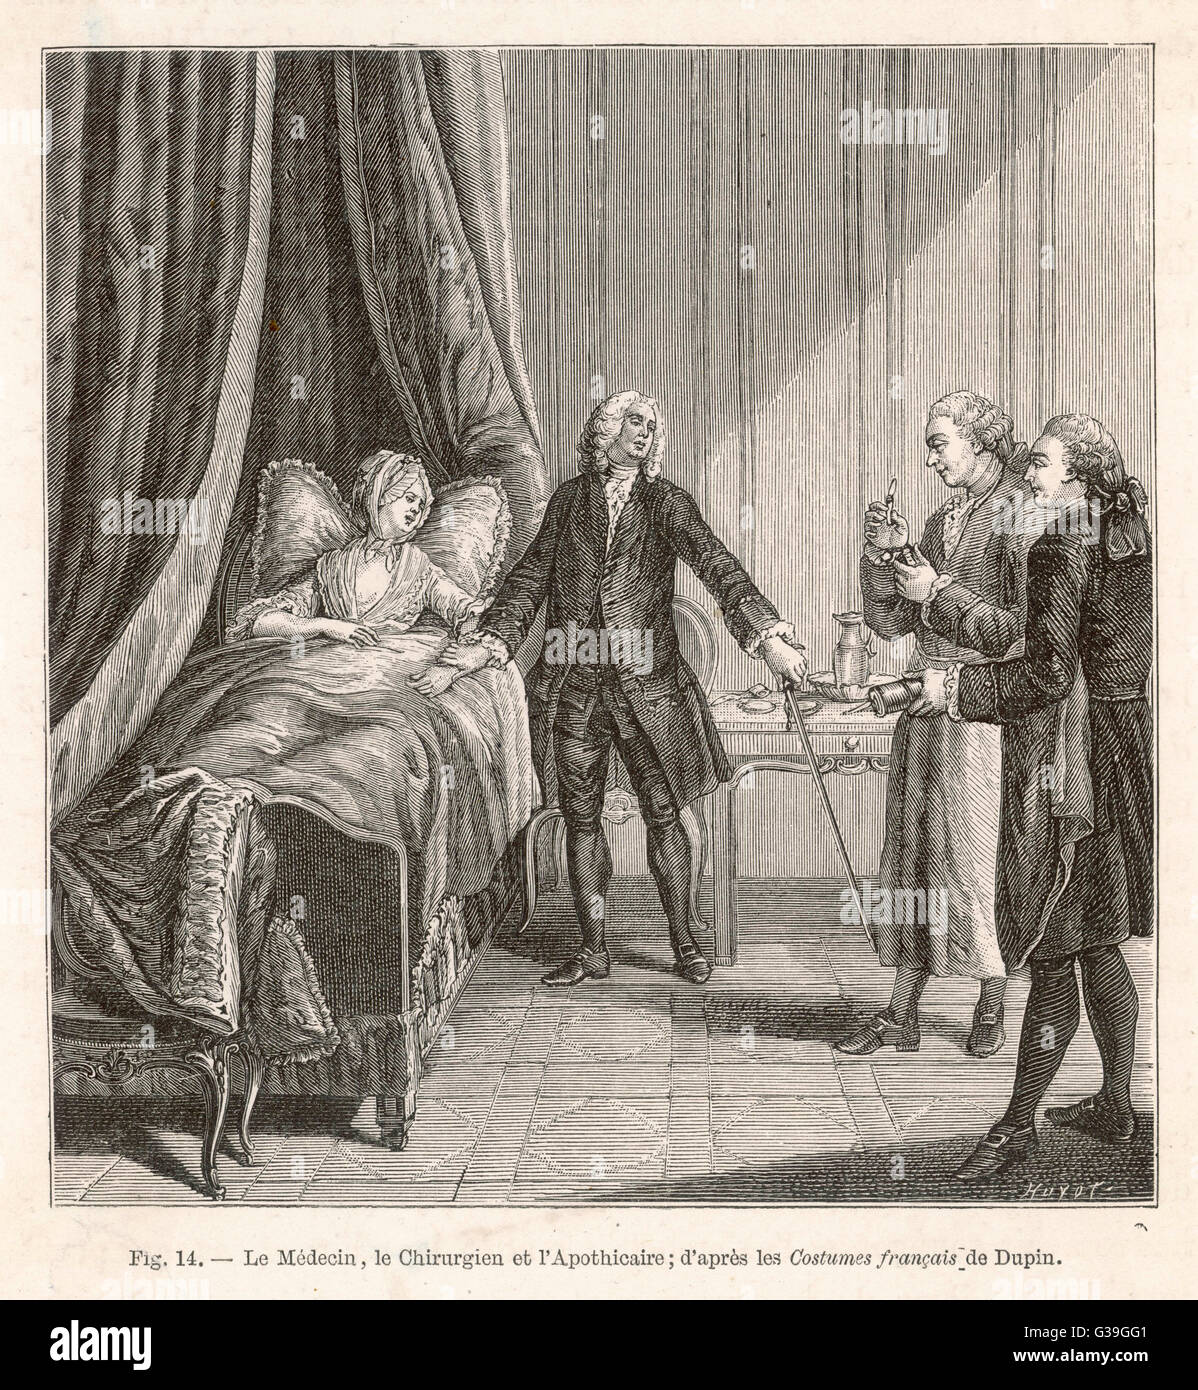 French doctor, surgeon and  apothecary with their patient         Date: 18th century Stock Photo